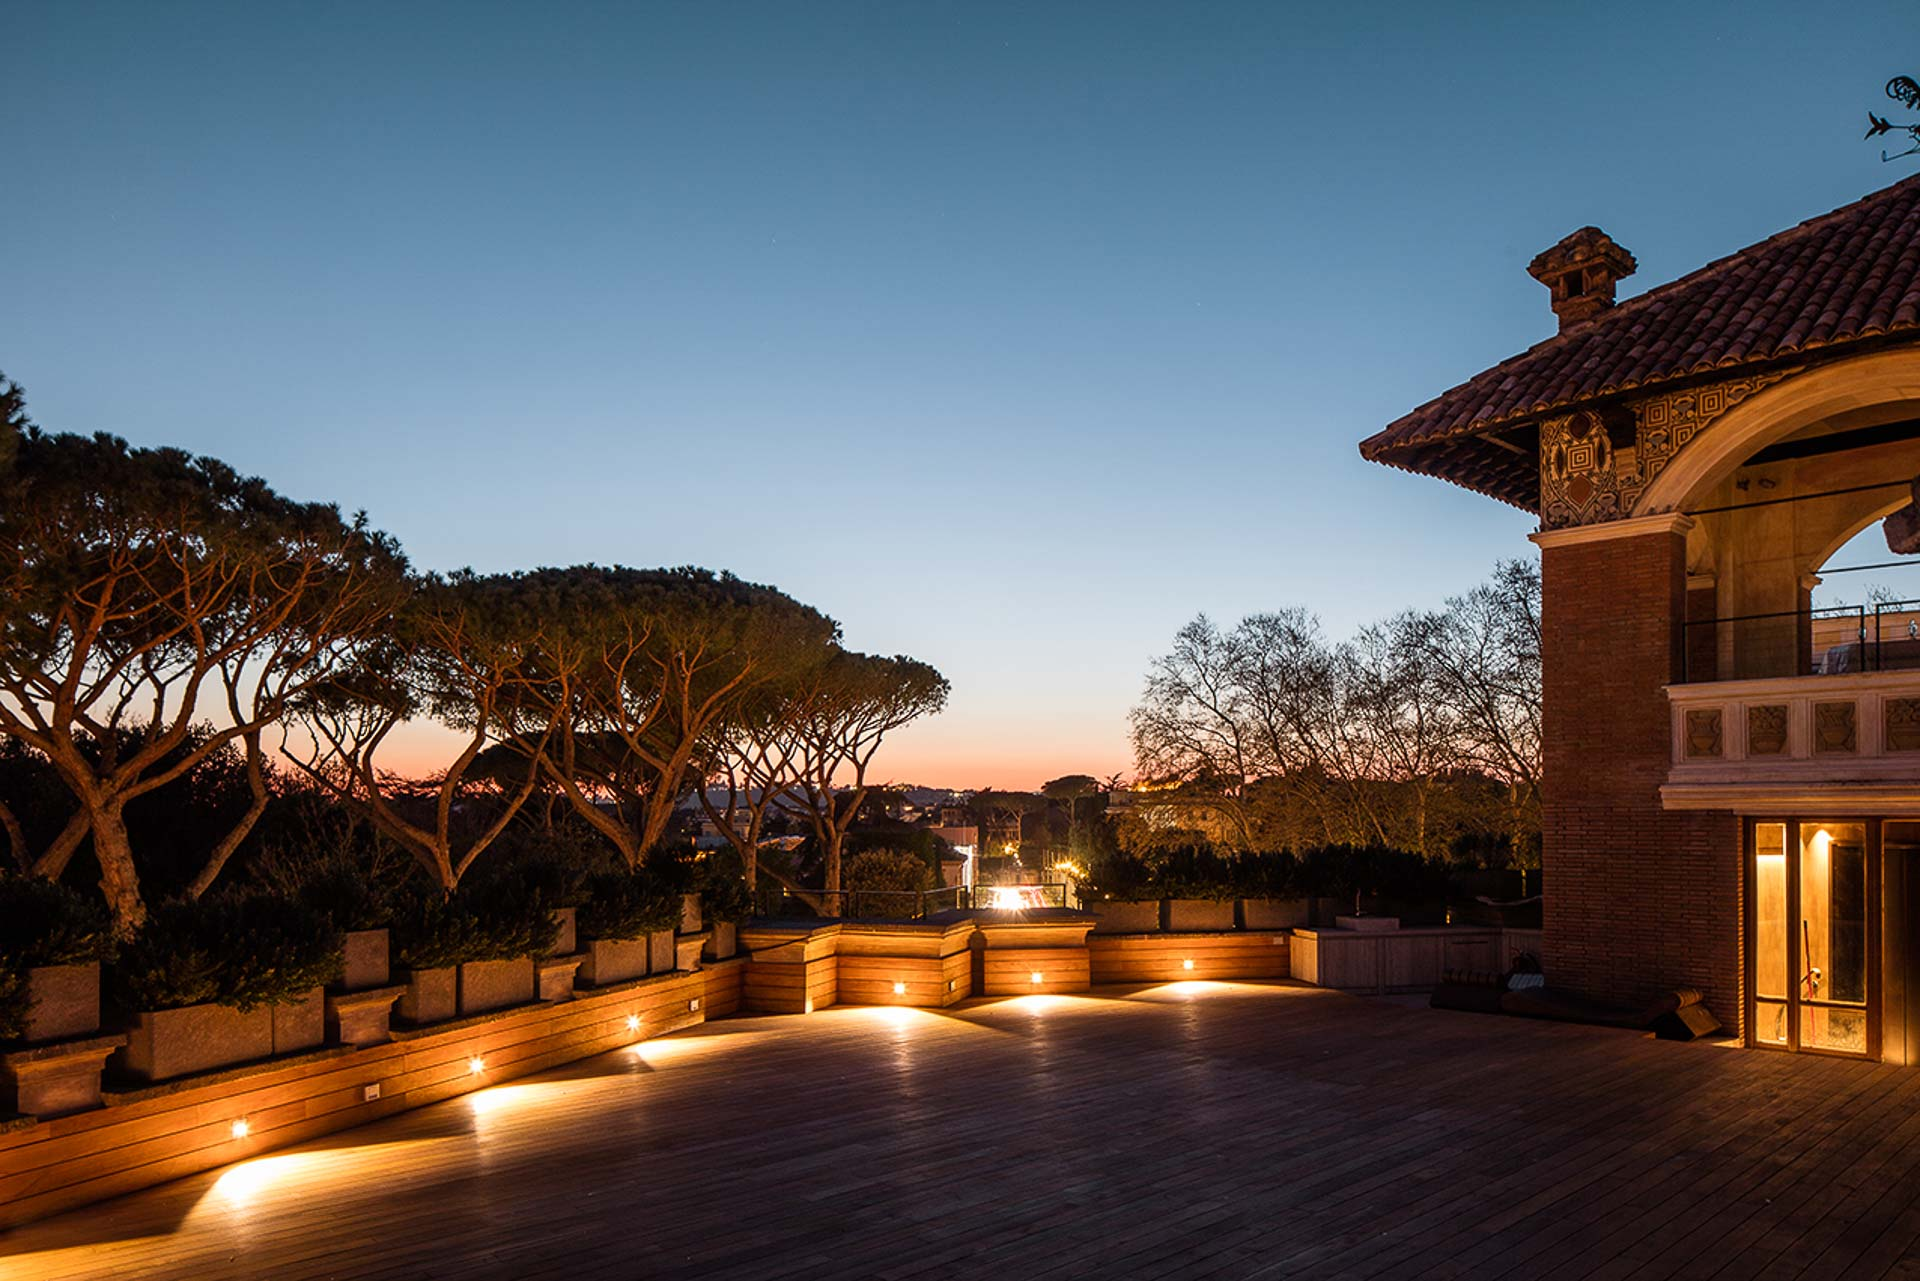 Villa Clara opulent property luxurious terrace guests enjoy 365 degree views of Rome available for rent exclusive events accommodation